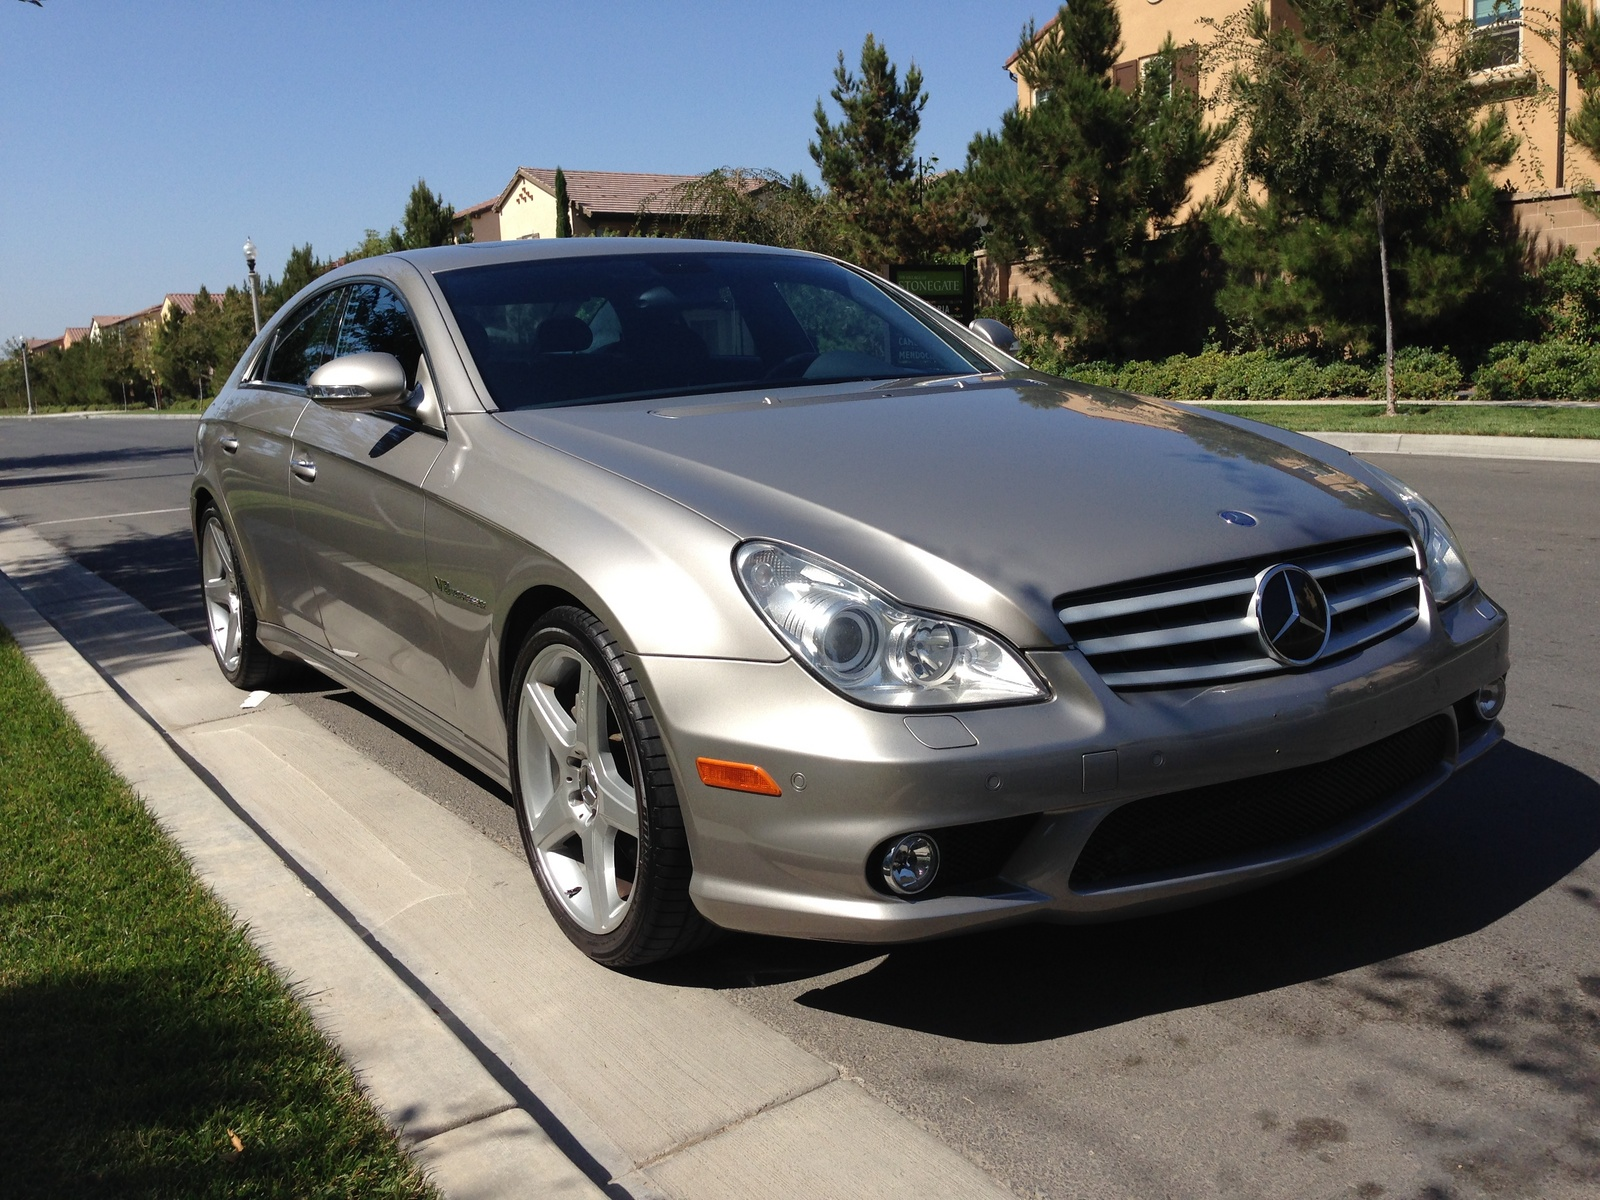 2006 mercedes benz cls class cls55 amg pictures to pin on. Black Bedroom Furniture Sets. Home Design Ideas